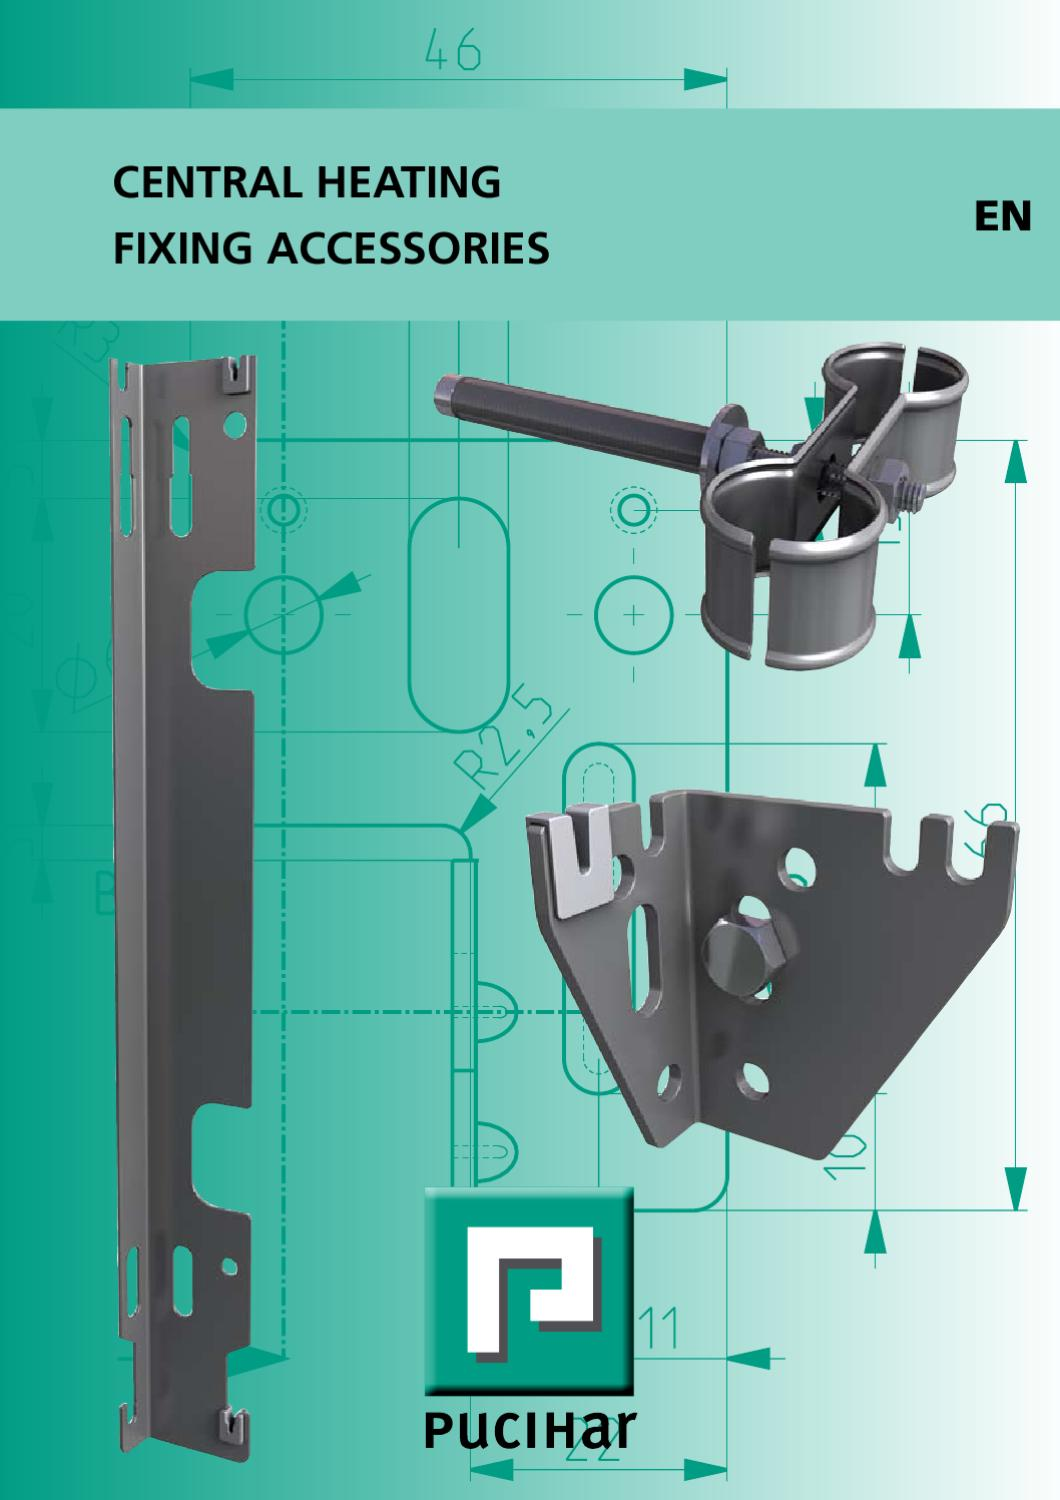 Central heating fixing accessories by Pucihar-p d.o.o. - issuu